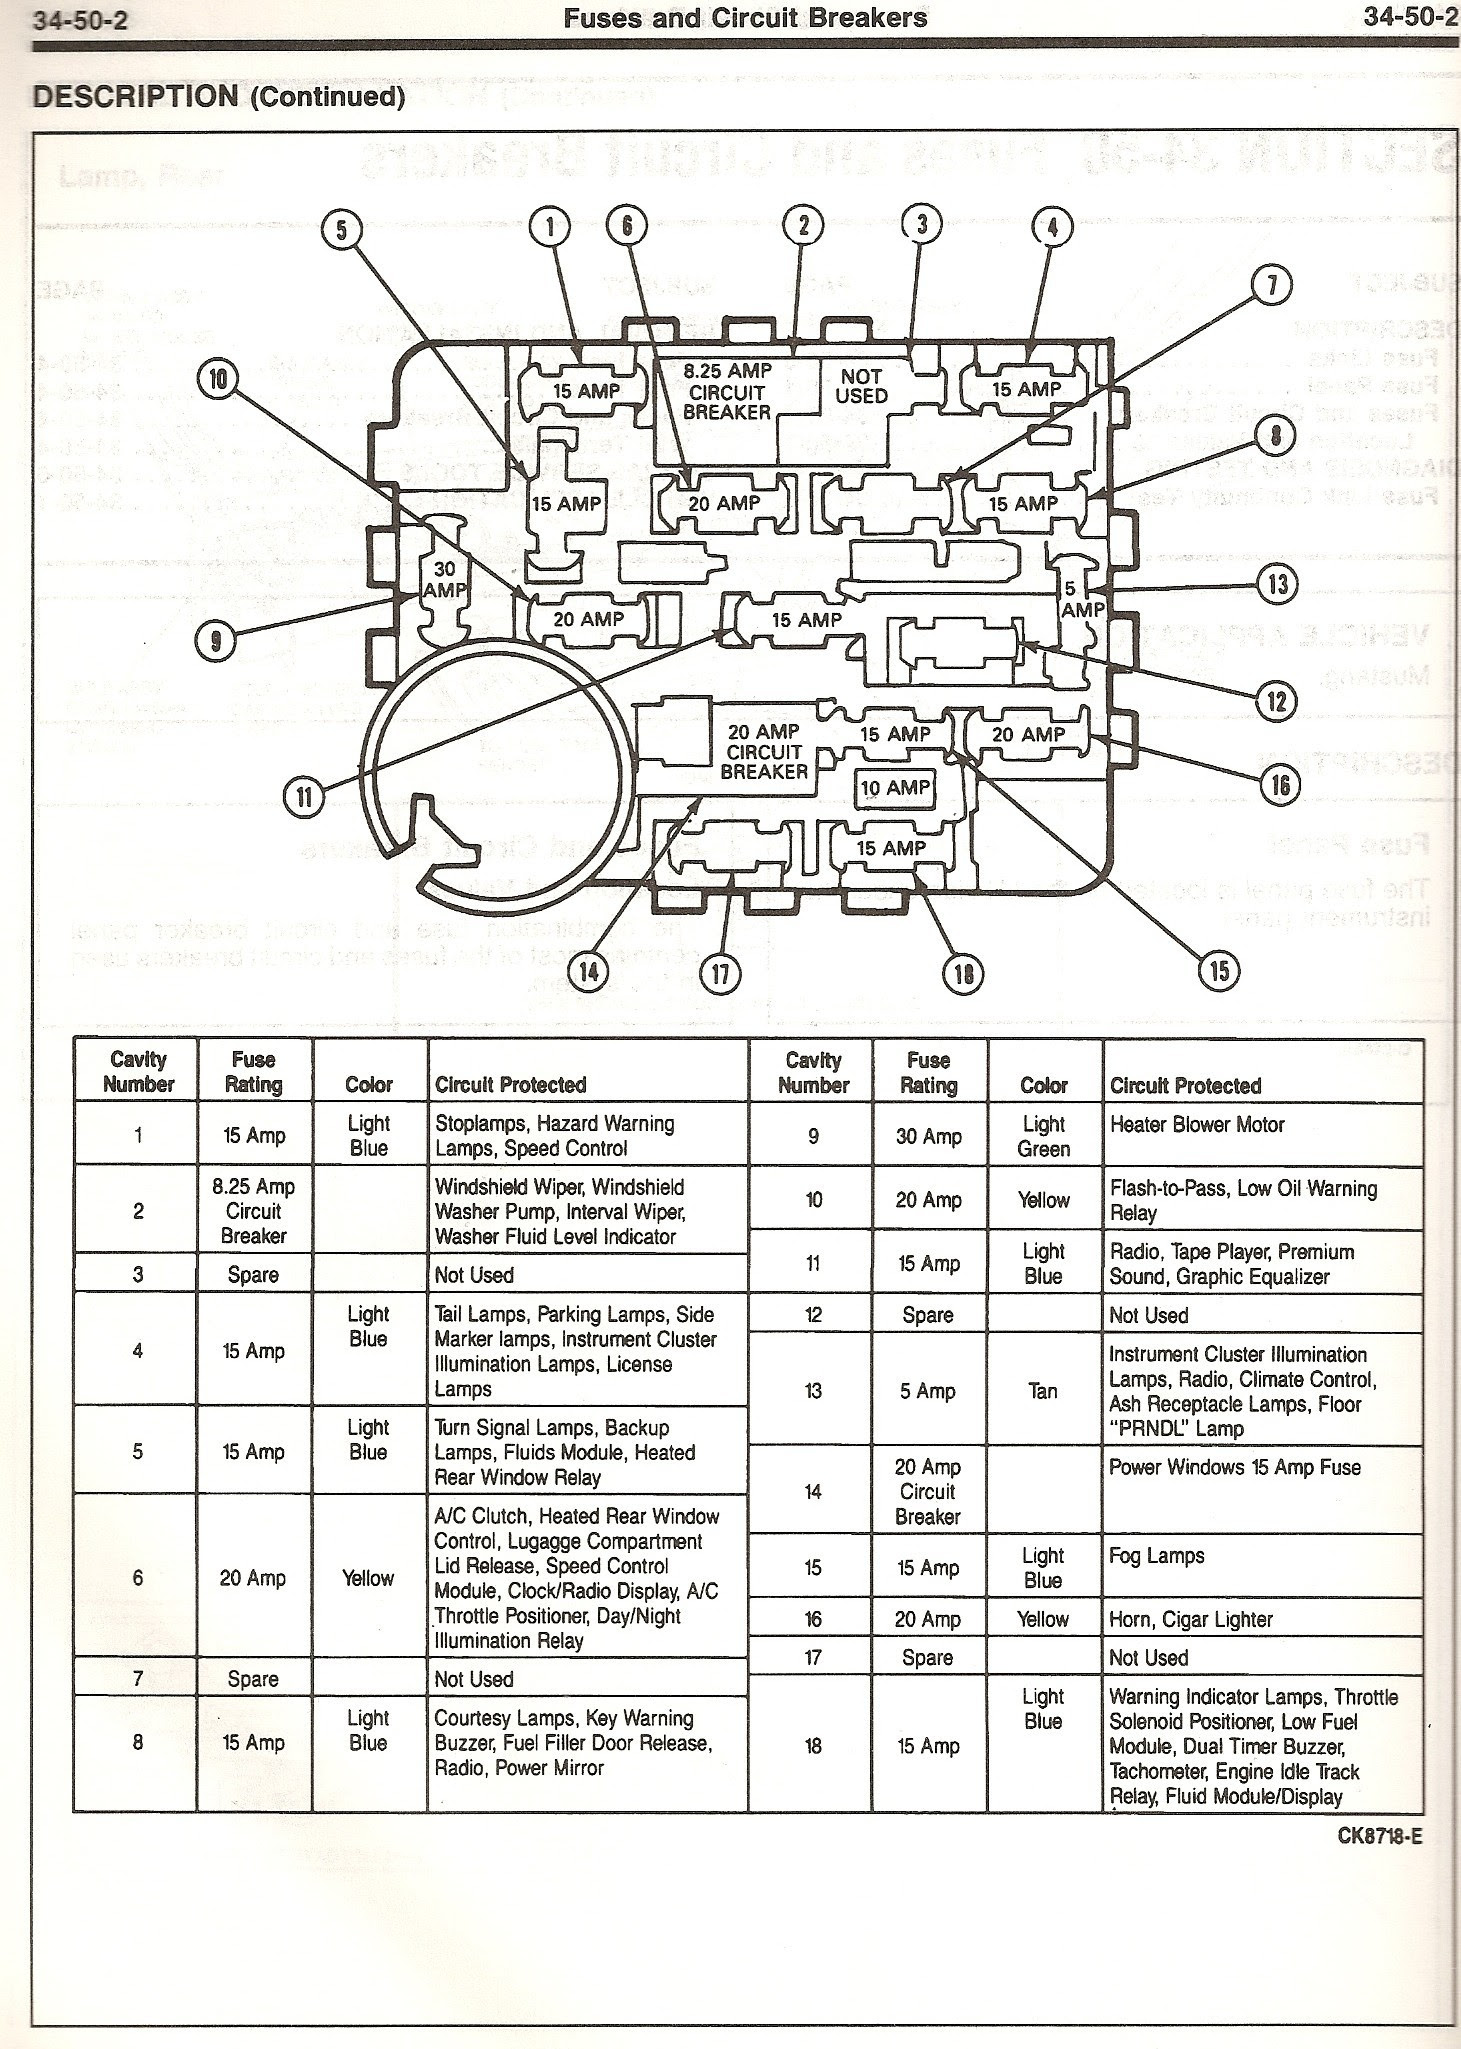 Diagram Wiring Diagram De Ford Ranger 1997 Full Version Hd Quality Ranger 1997 Diagrammunng Nowroma It